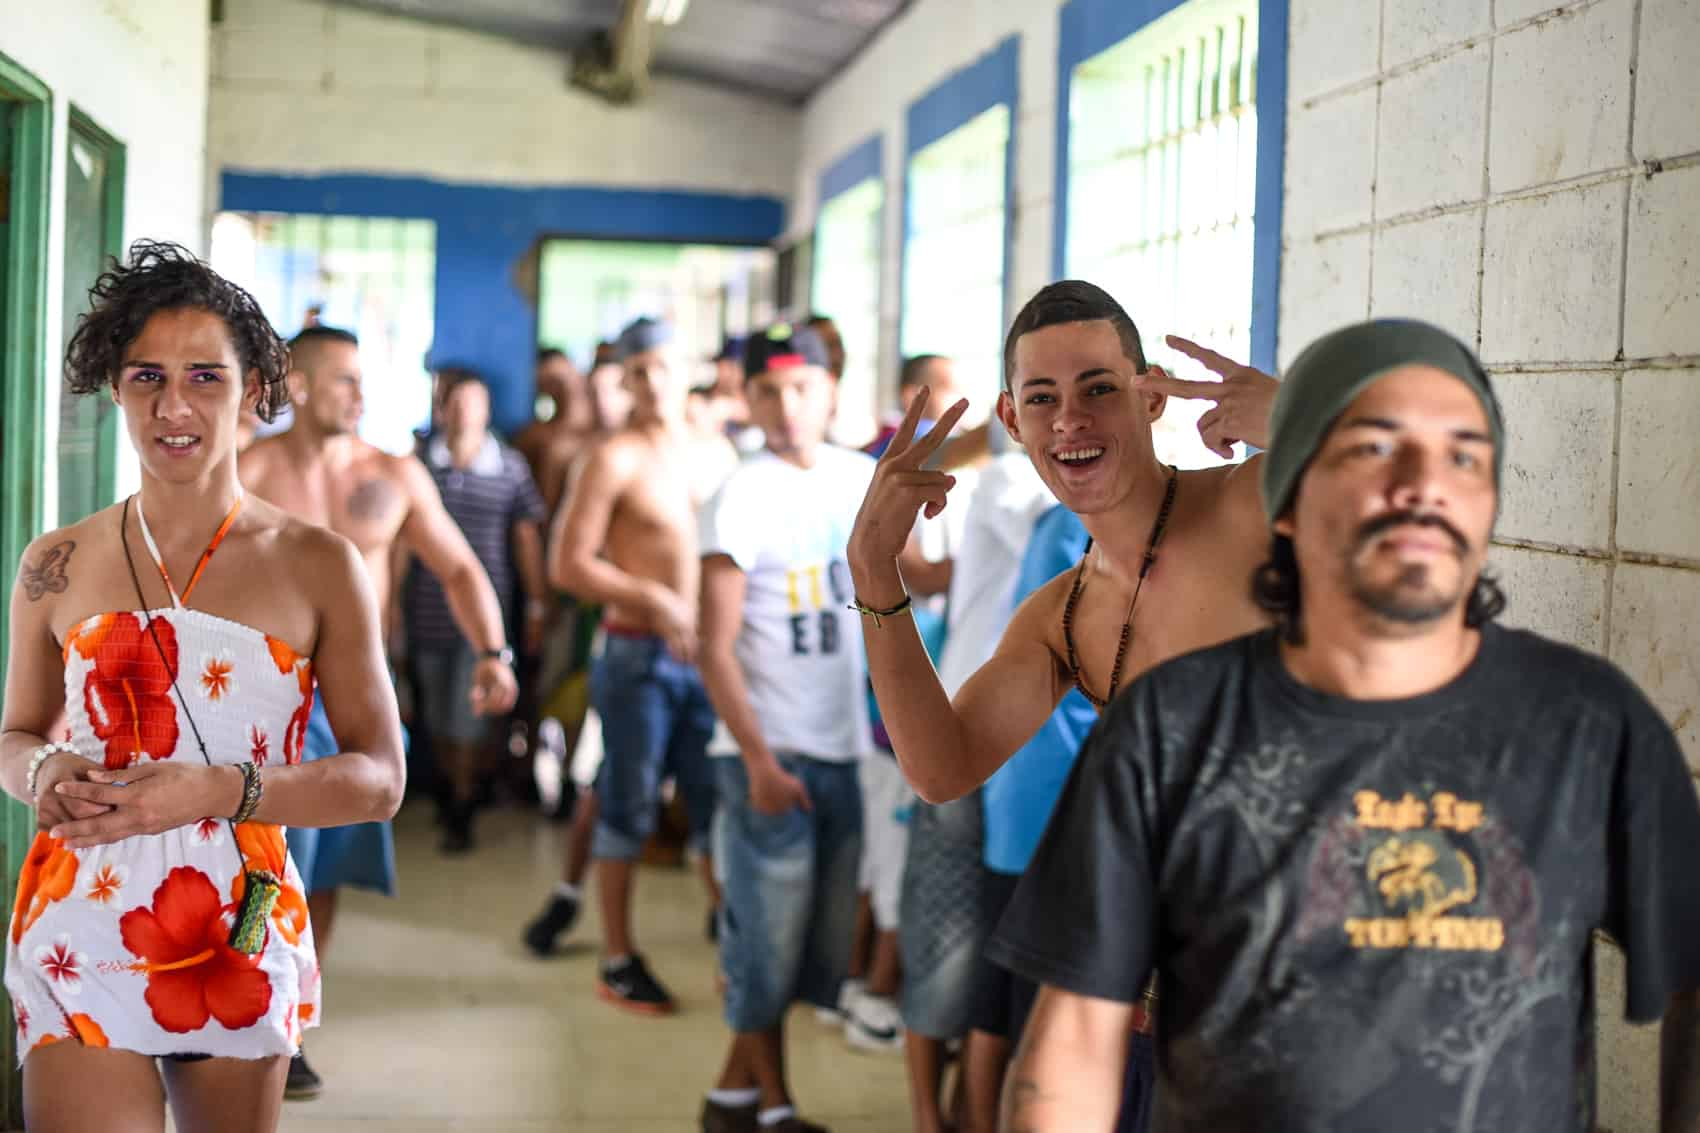 the unfair experiences of transgender inmates A study of california prisons found that transgender women in men's prisons were 13 times as likely to be sexually abused as other inmates (center for evidence-based corrections, 2009) those who are young, have disabilities or mental illness, are gay, lesbian or bisexual, or are incarcerated for the first time are also especially vulnerable.